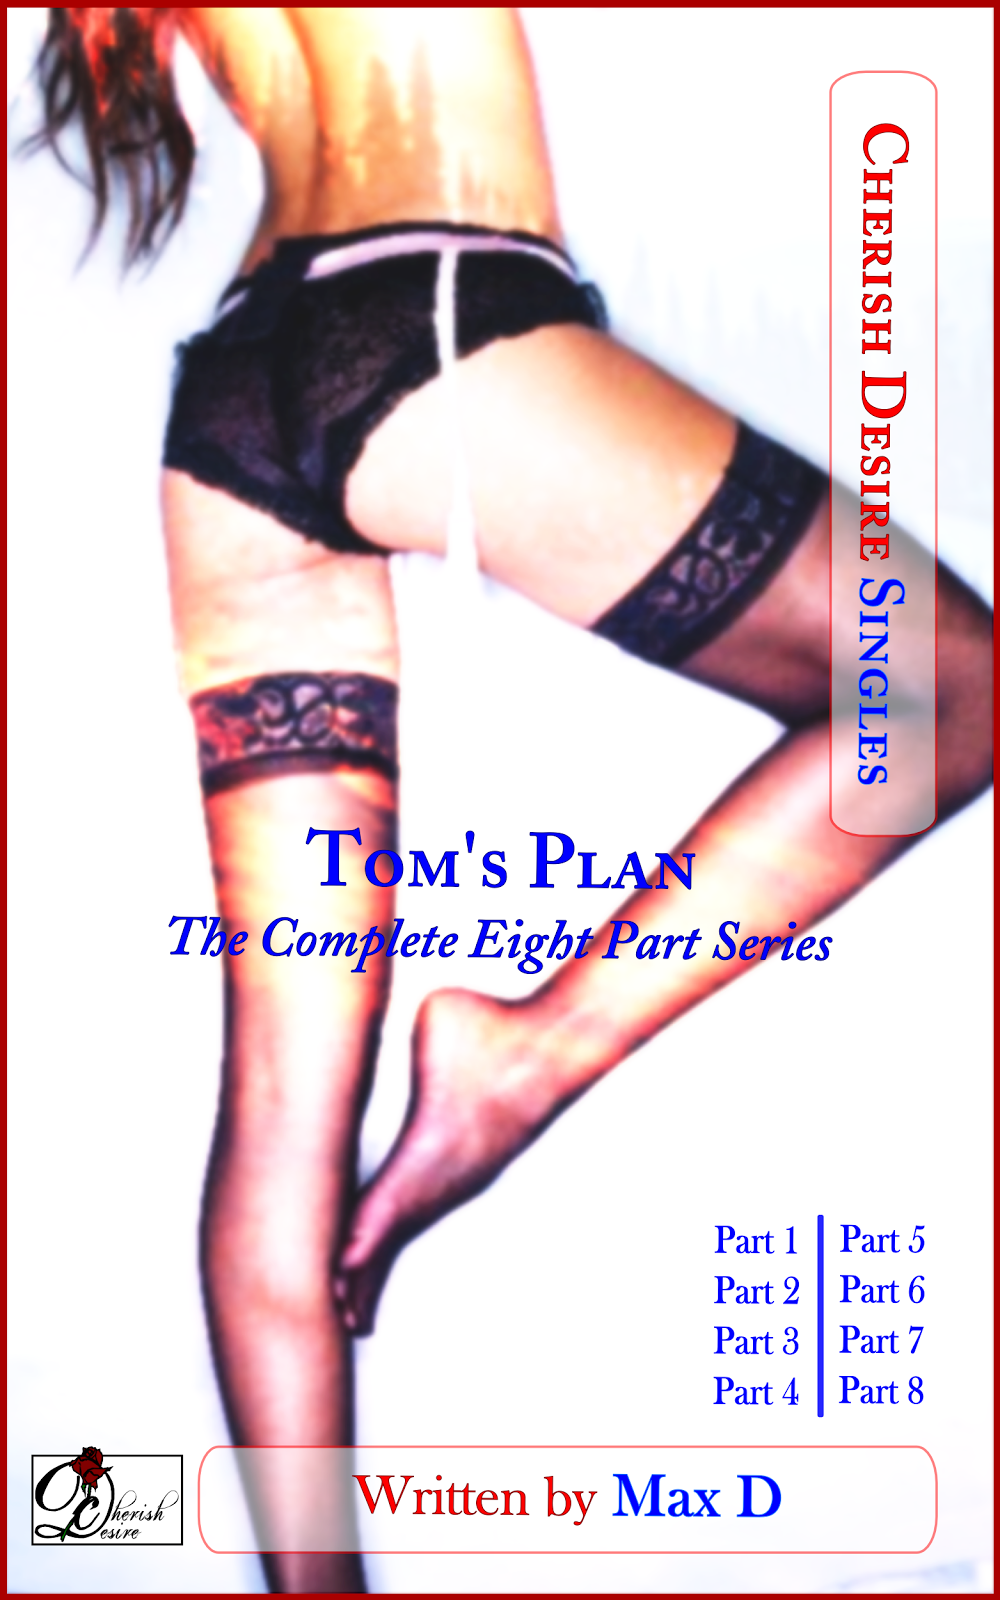 Cherish Desire Singles: Tom's Plan (The Complete Eight Part Series), Max D, erotica